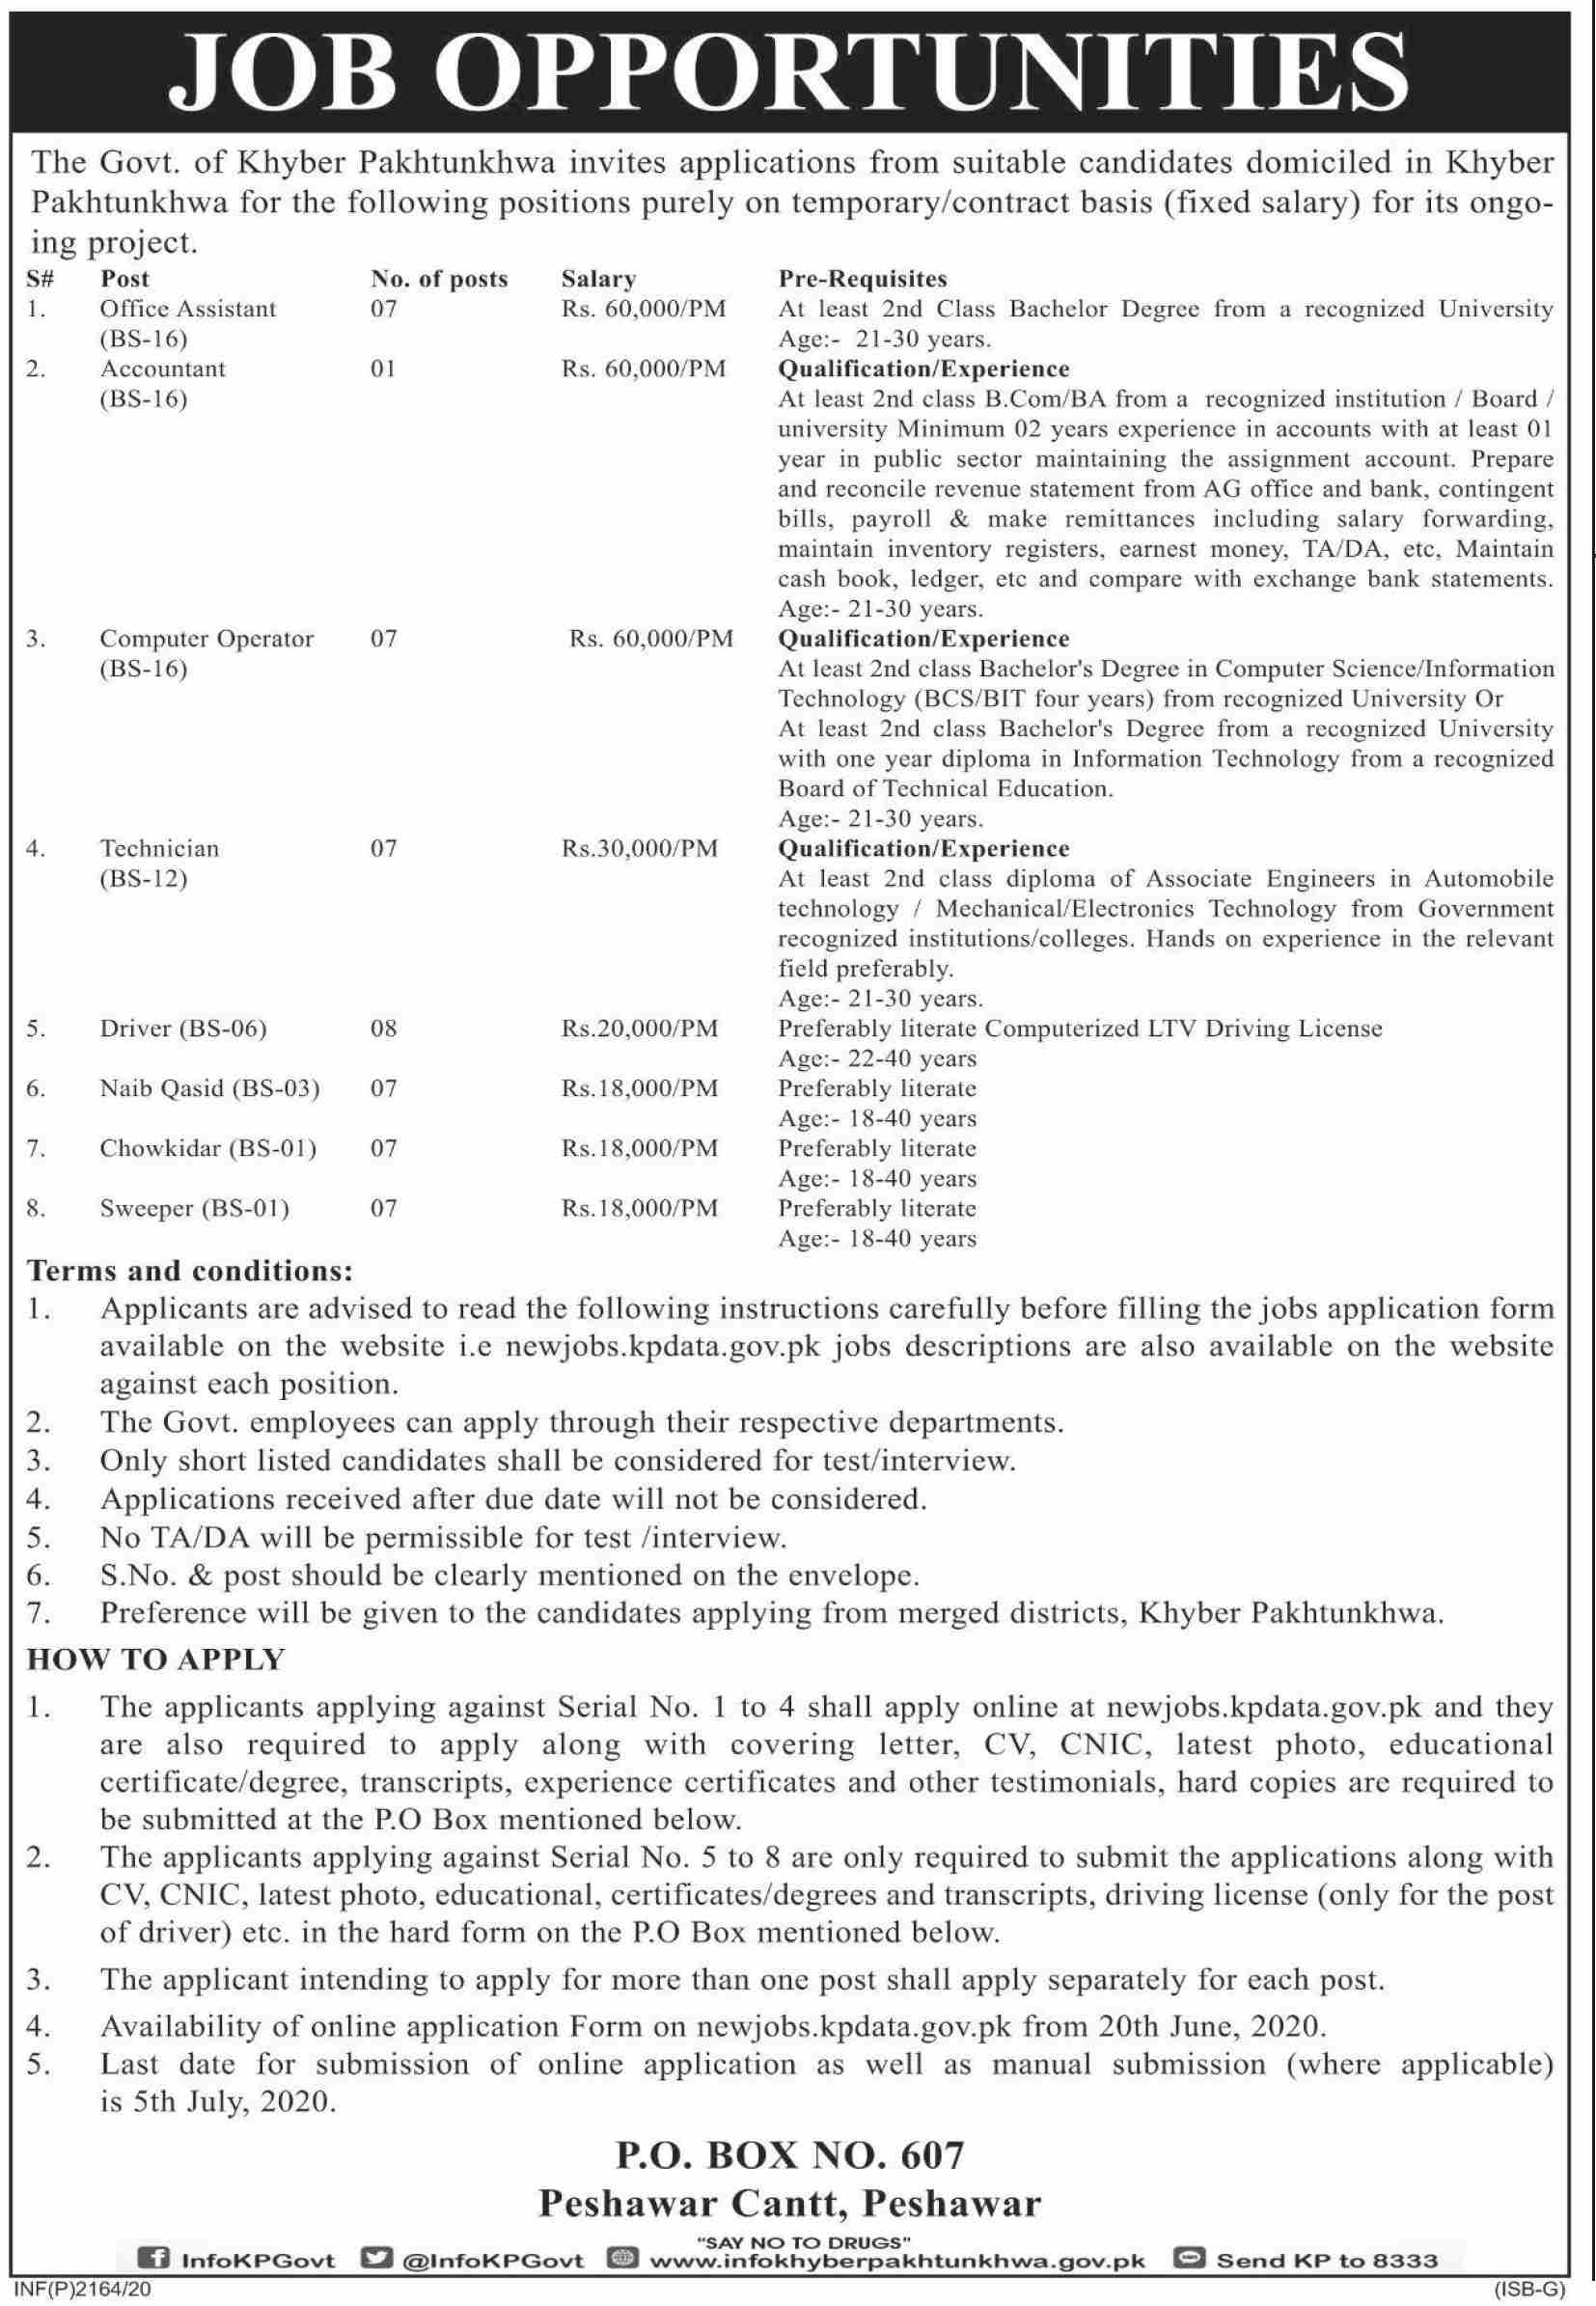 Khyber Pakhtunkhwa Government jobs newspaper ad for Computer Operator in Peshawar